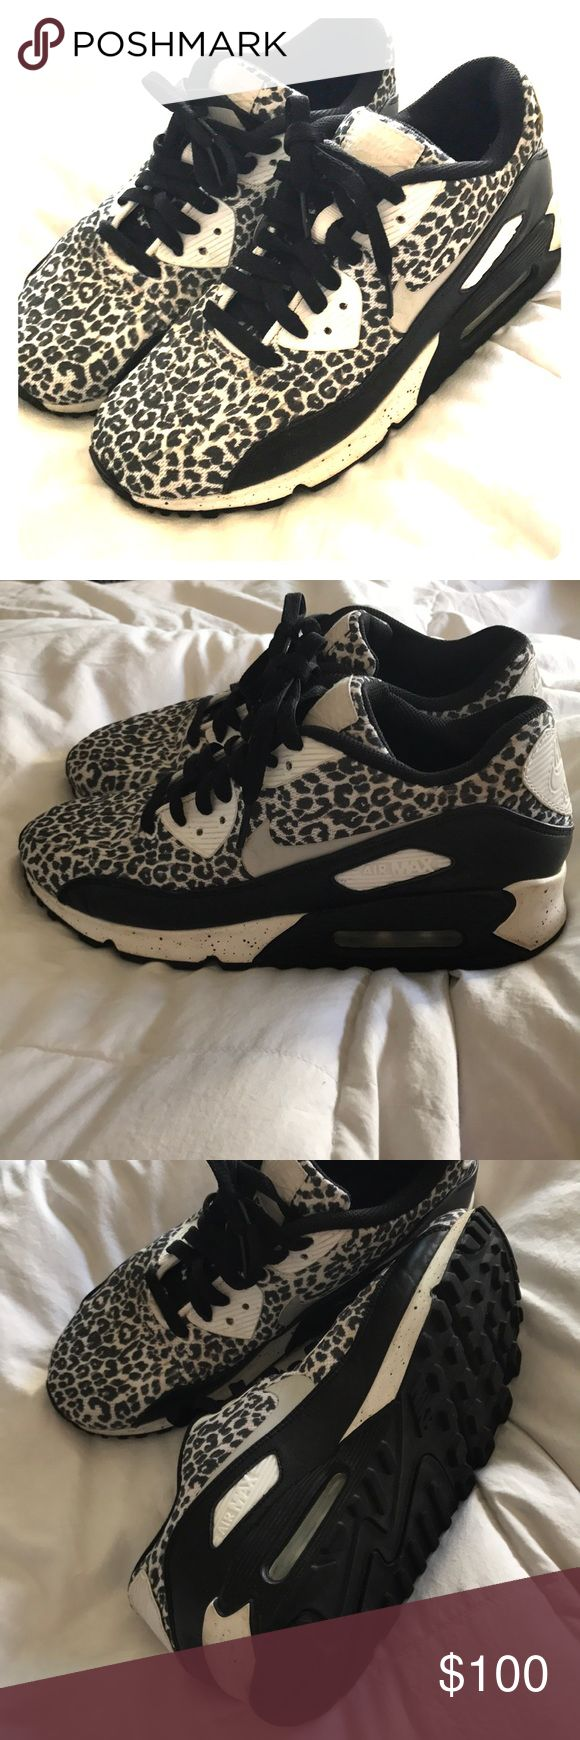 Nike ID leopard Air Max Adorable and like new! Nike Shoes Athletic Shoes